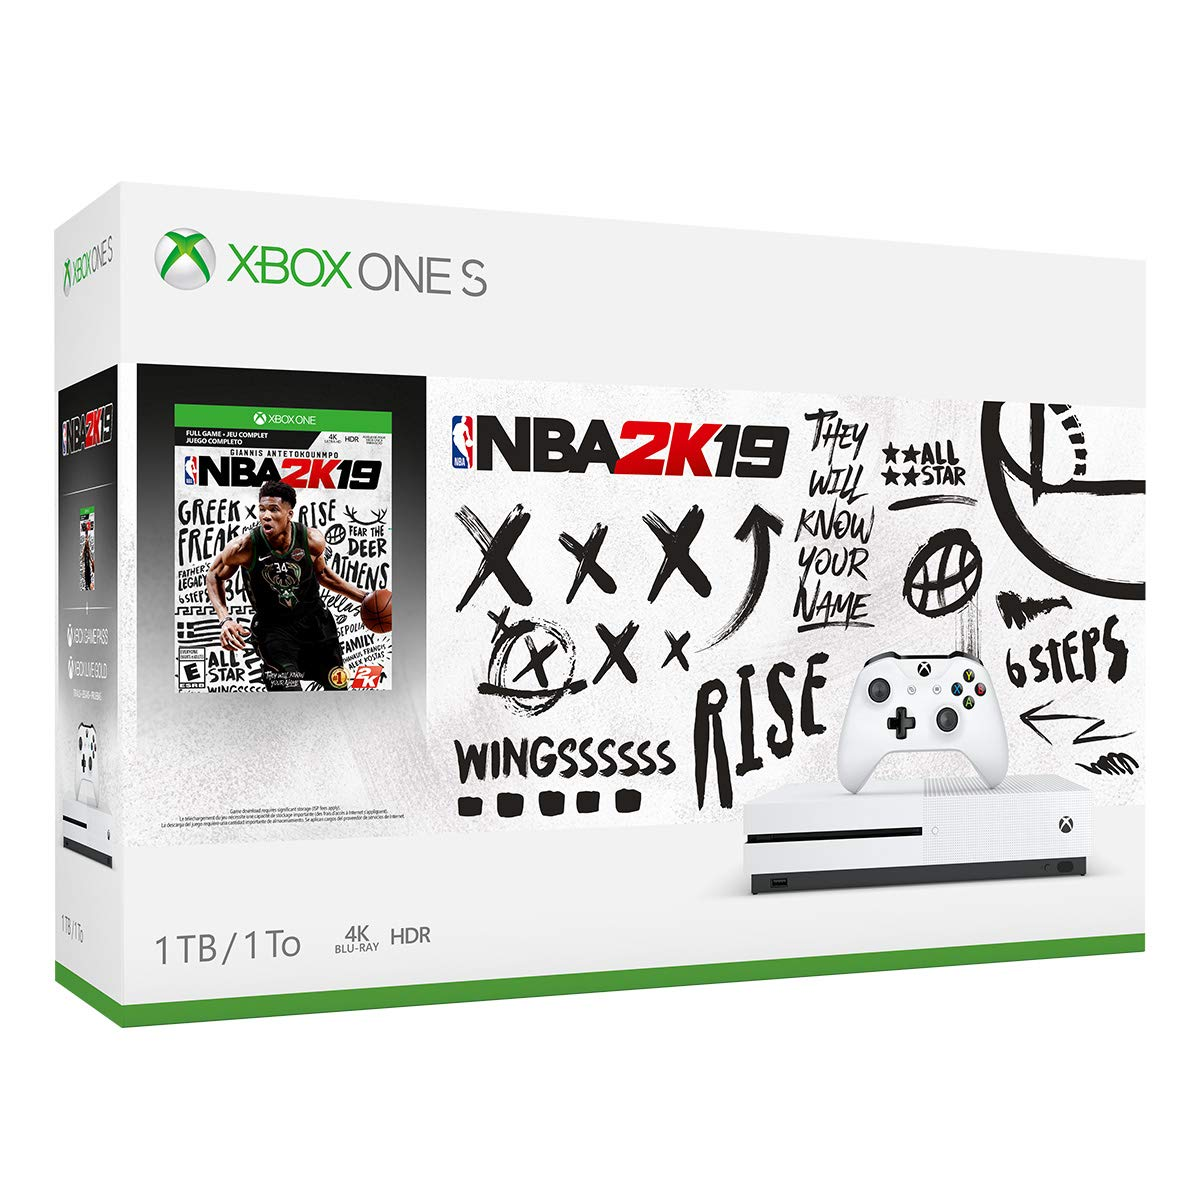 Xbox One 1TB Console Bundle Discontinued